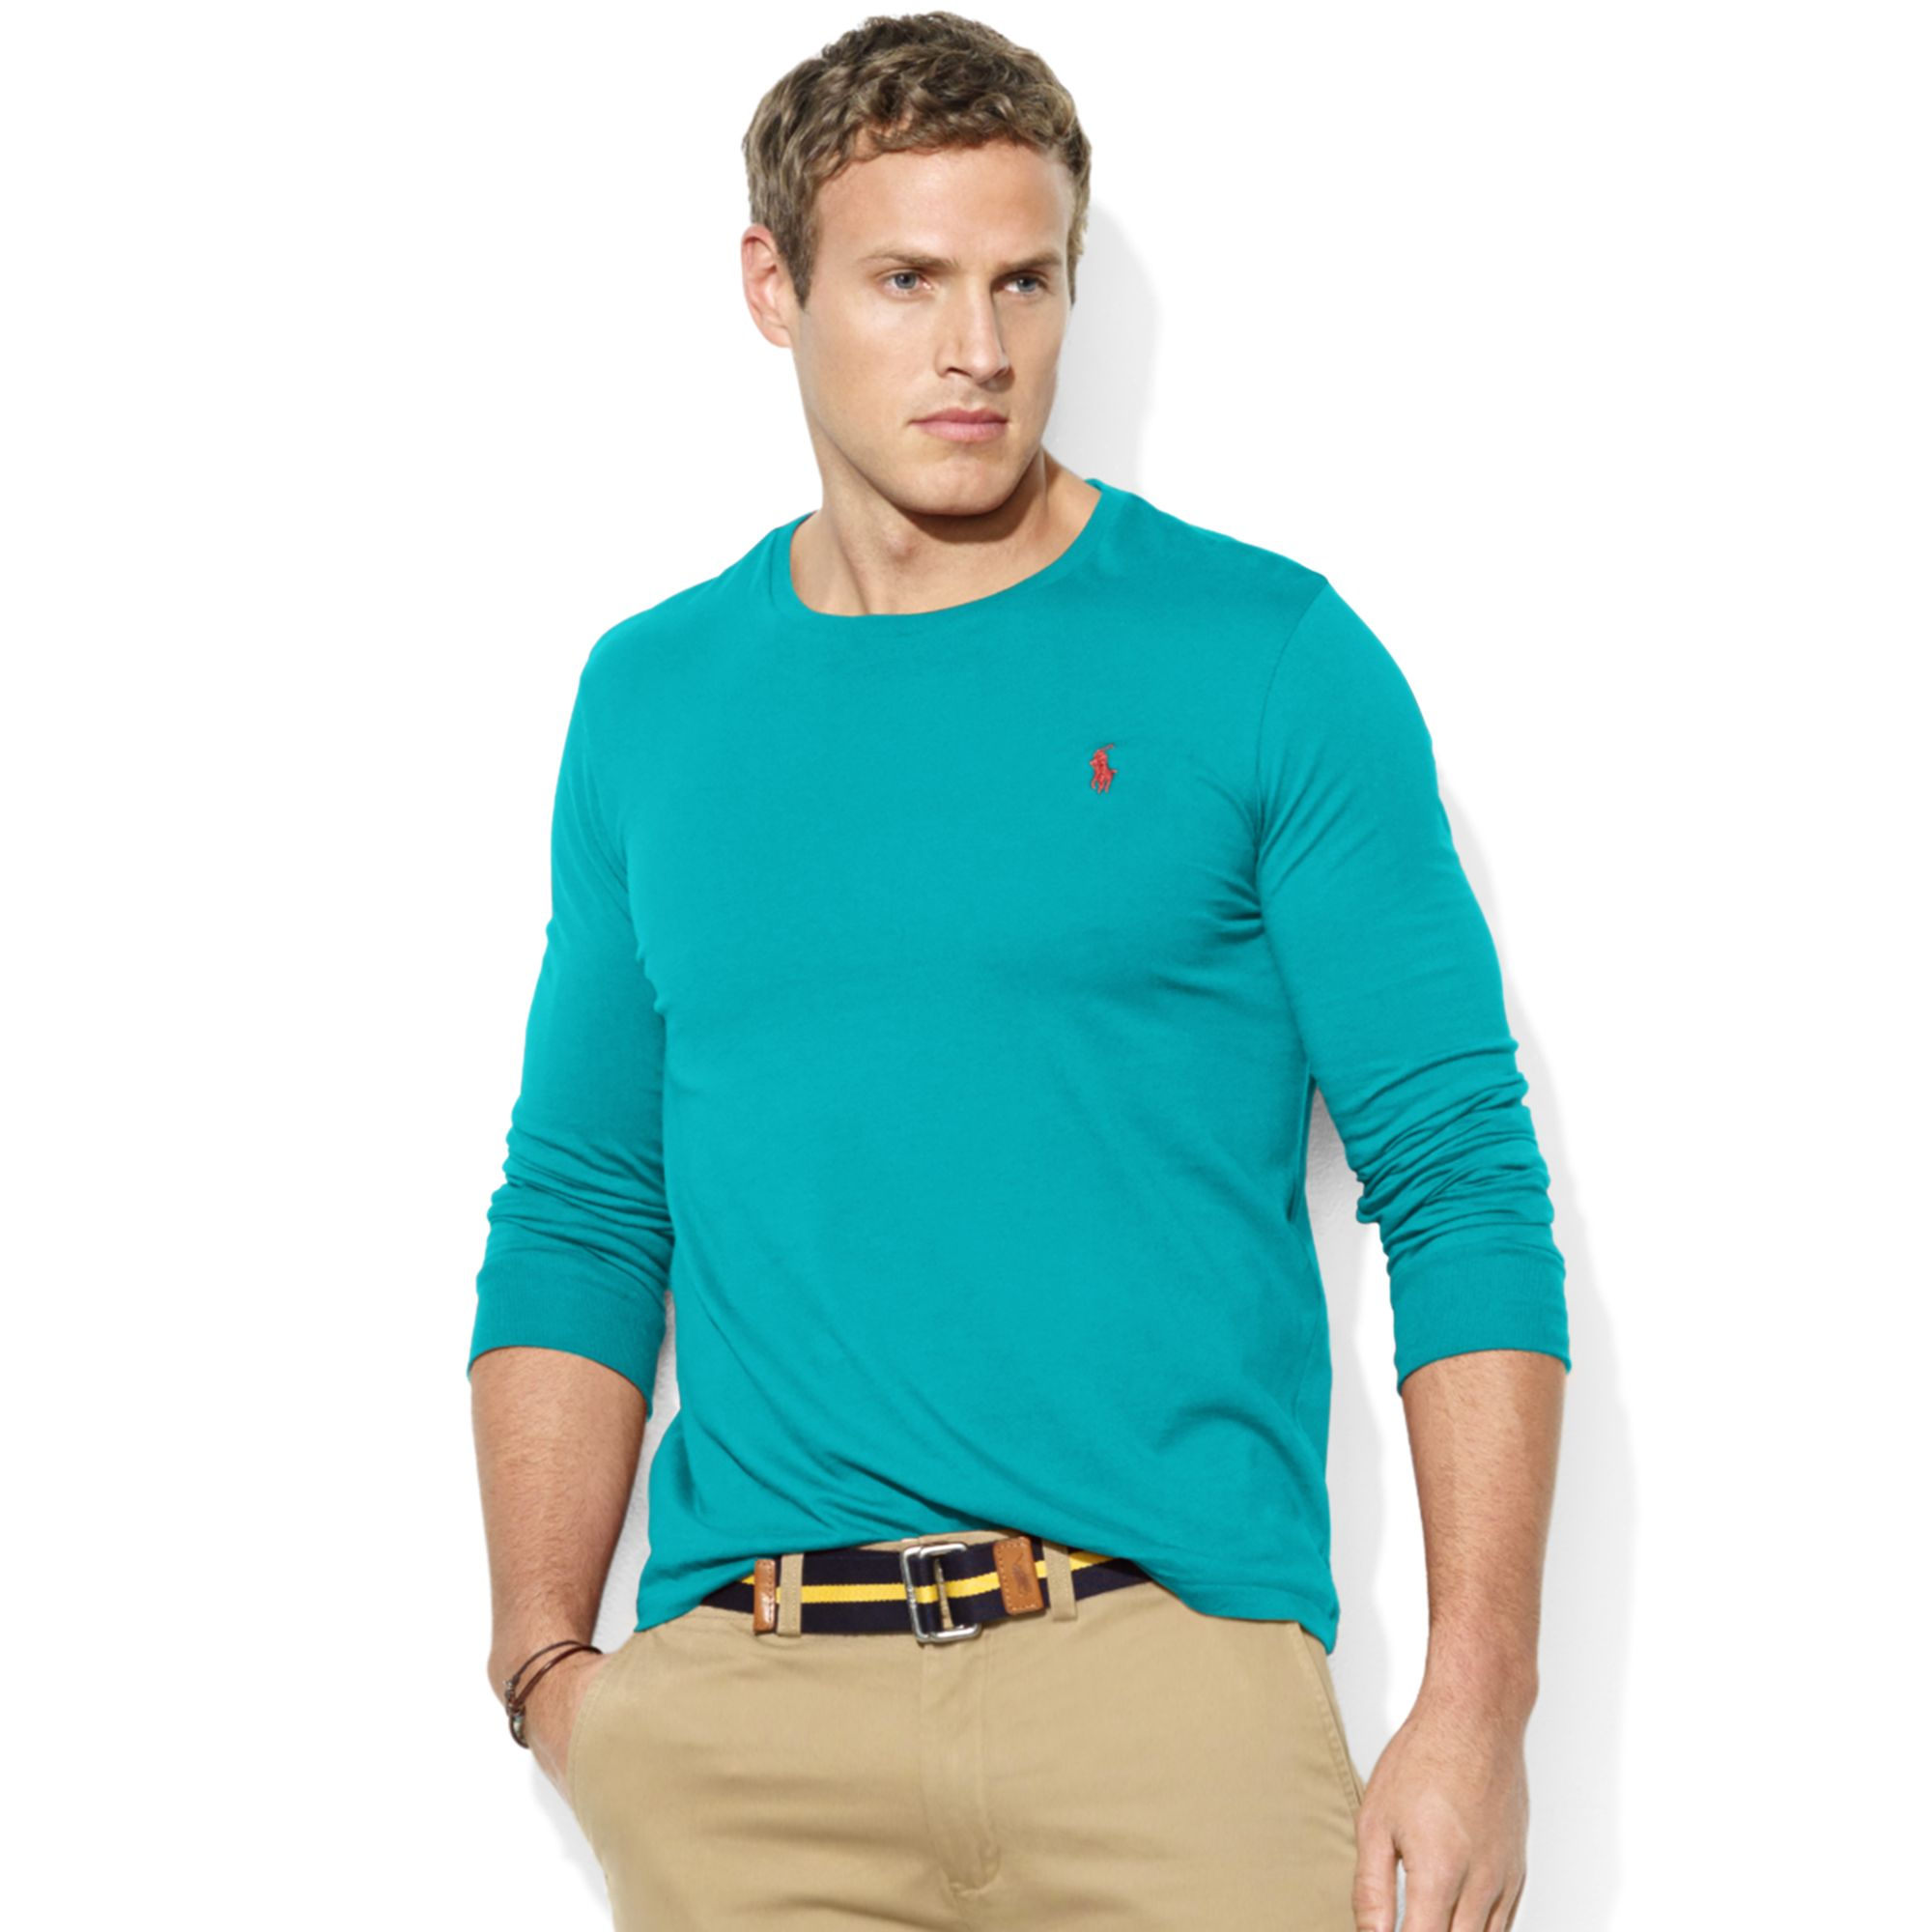 Ralph lauren classic fit long sleeve pocket crew neck for Polo t shirts with pocket online